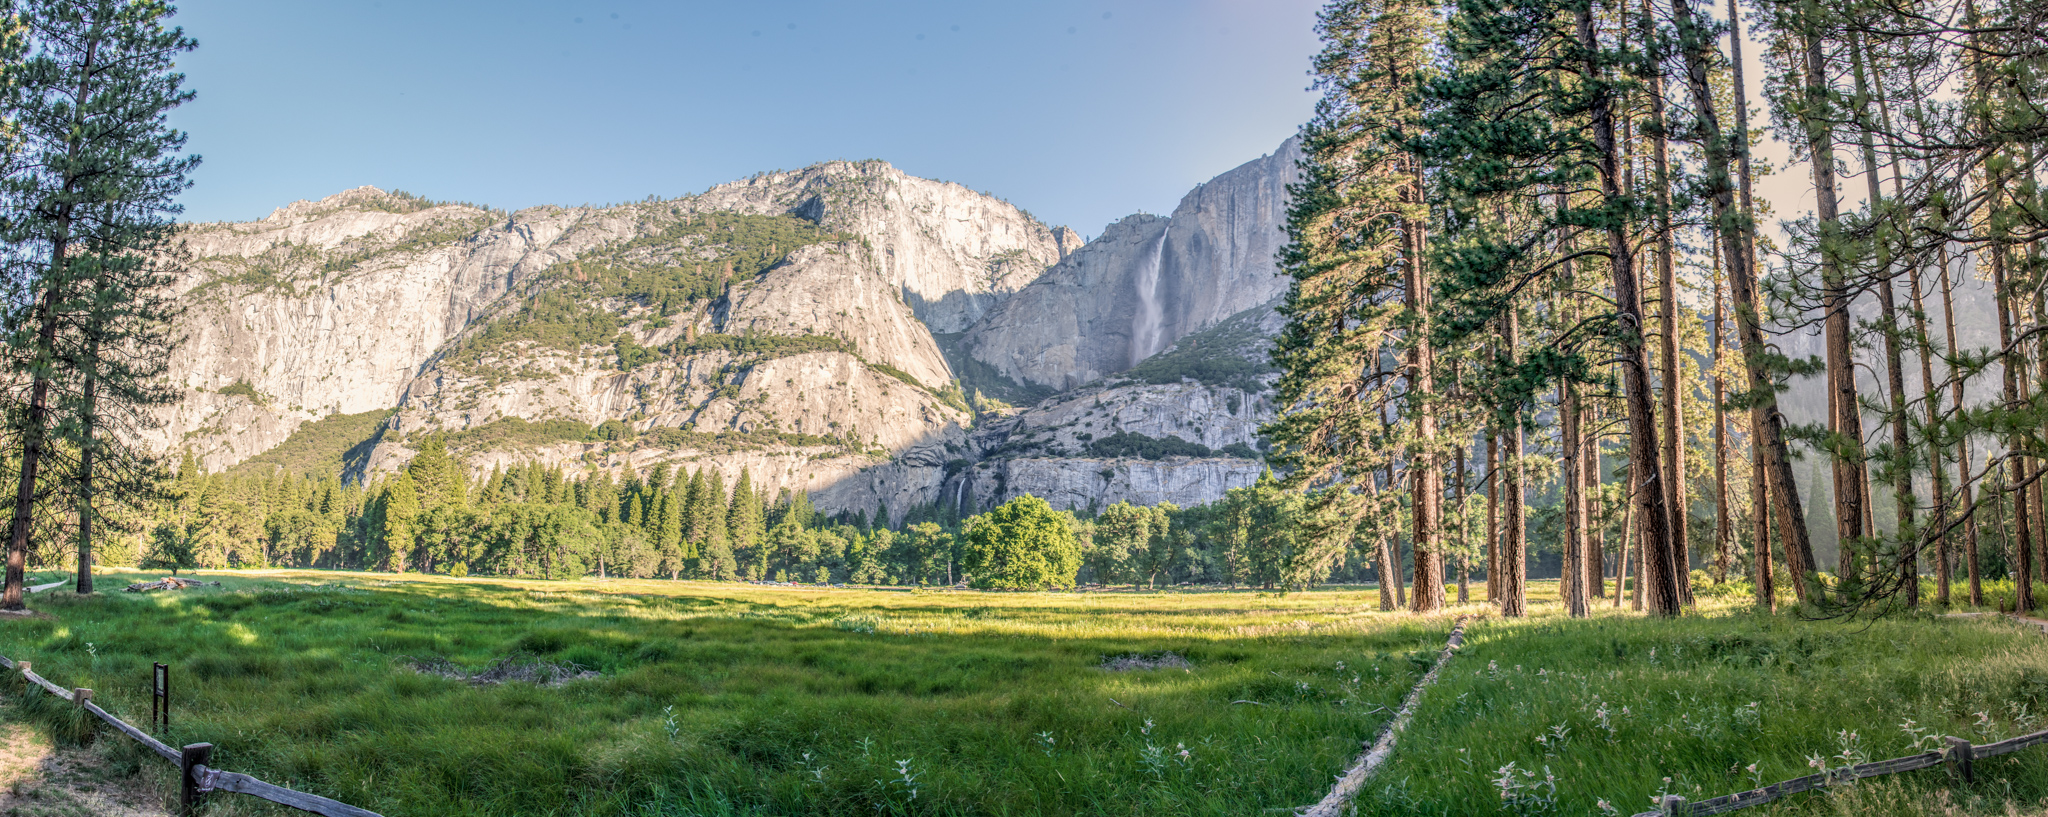 2016-07-03 - Yosemite Valley - 063